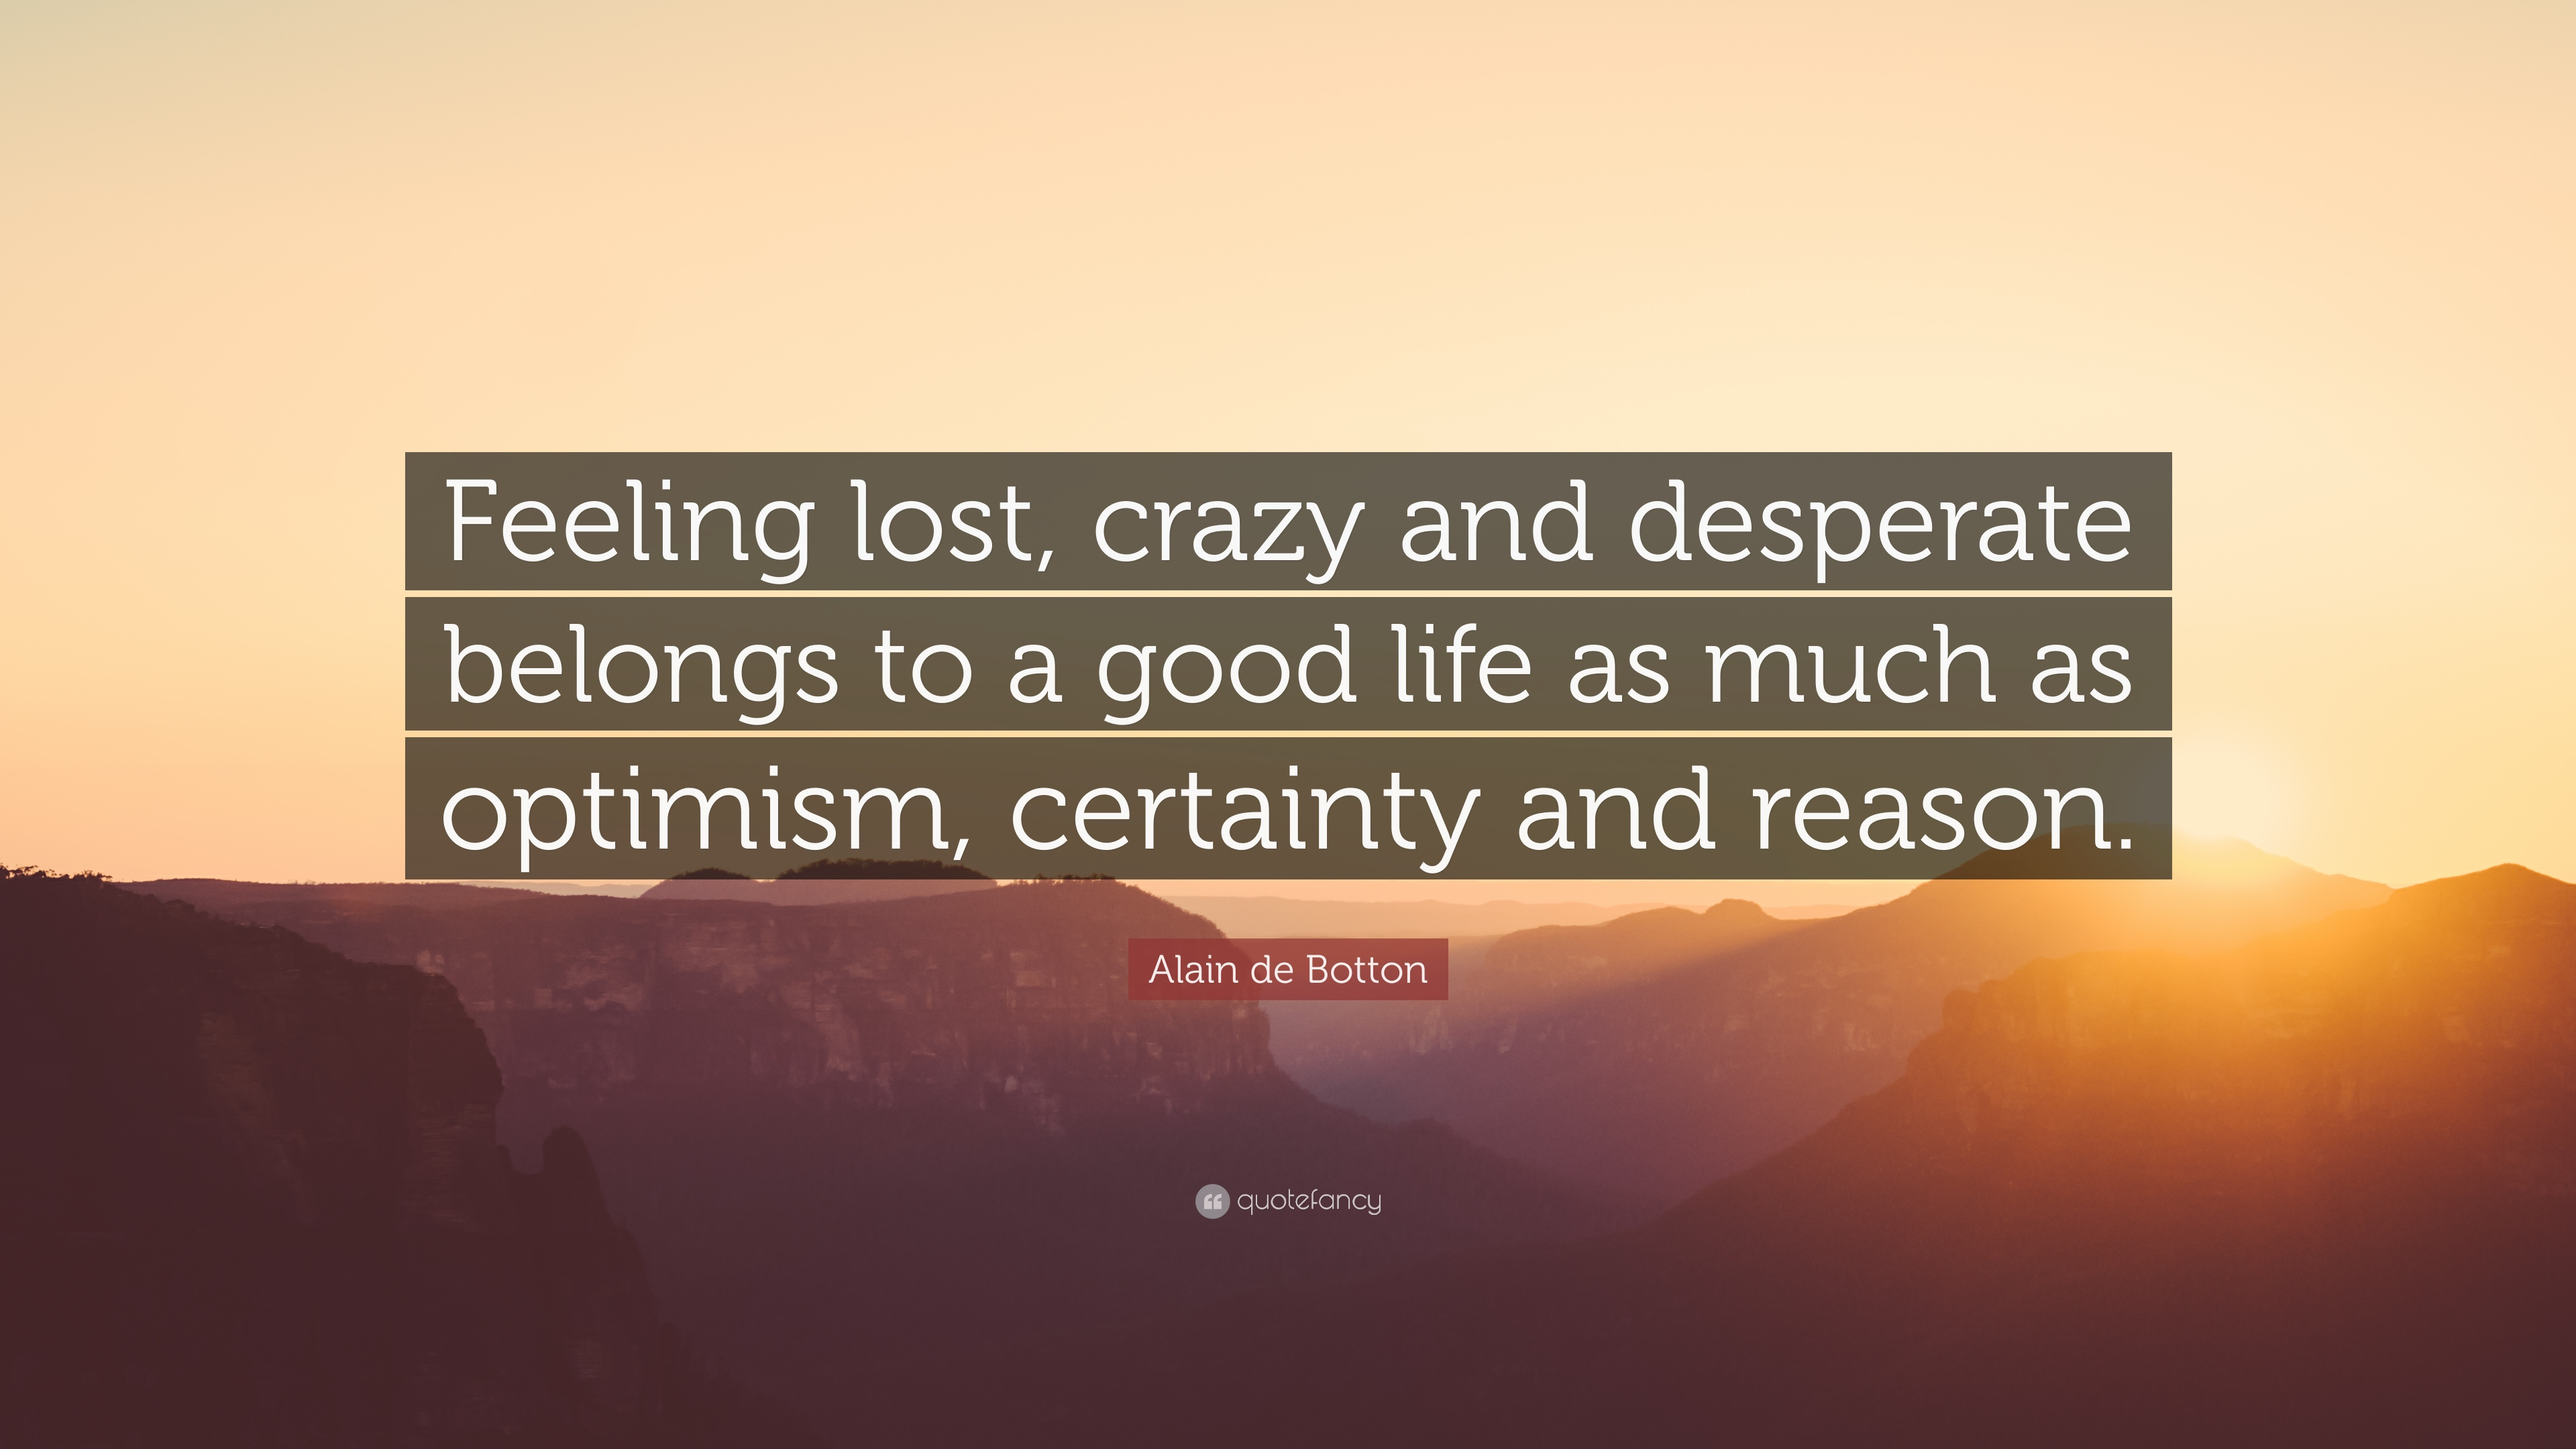 Alain De Botton Quote Feeling Lost Crazy And Desperate Belongs To A Good Life As Much As Optimism Certainty And Reason 9 Wallpapers Quotefancy